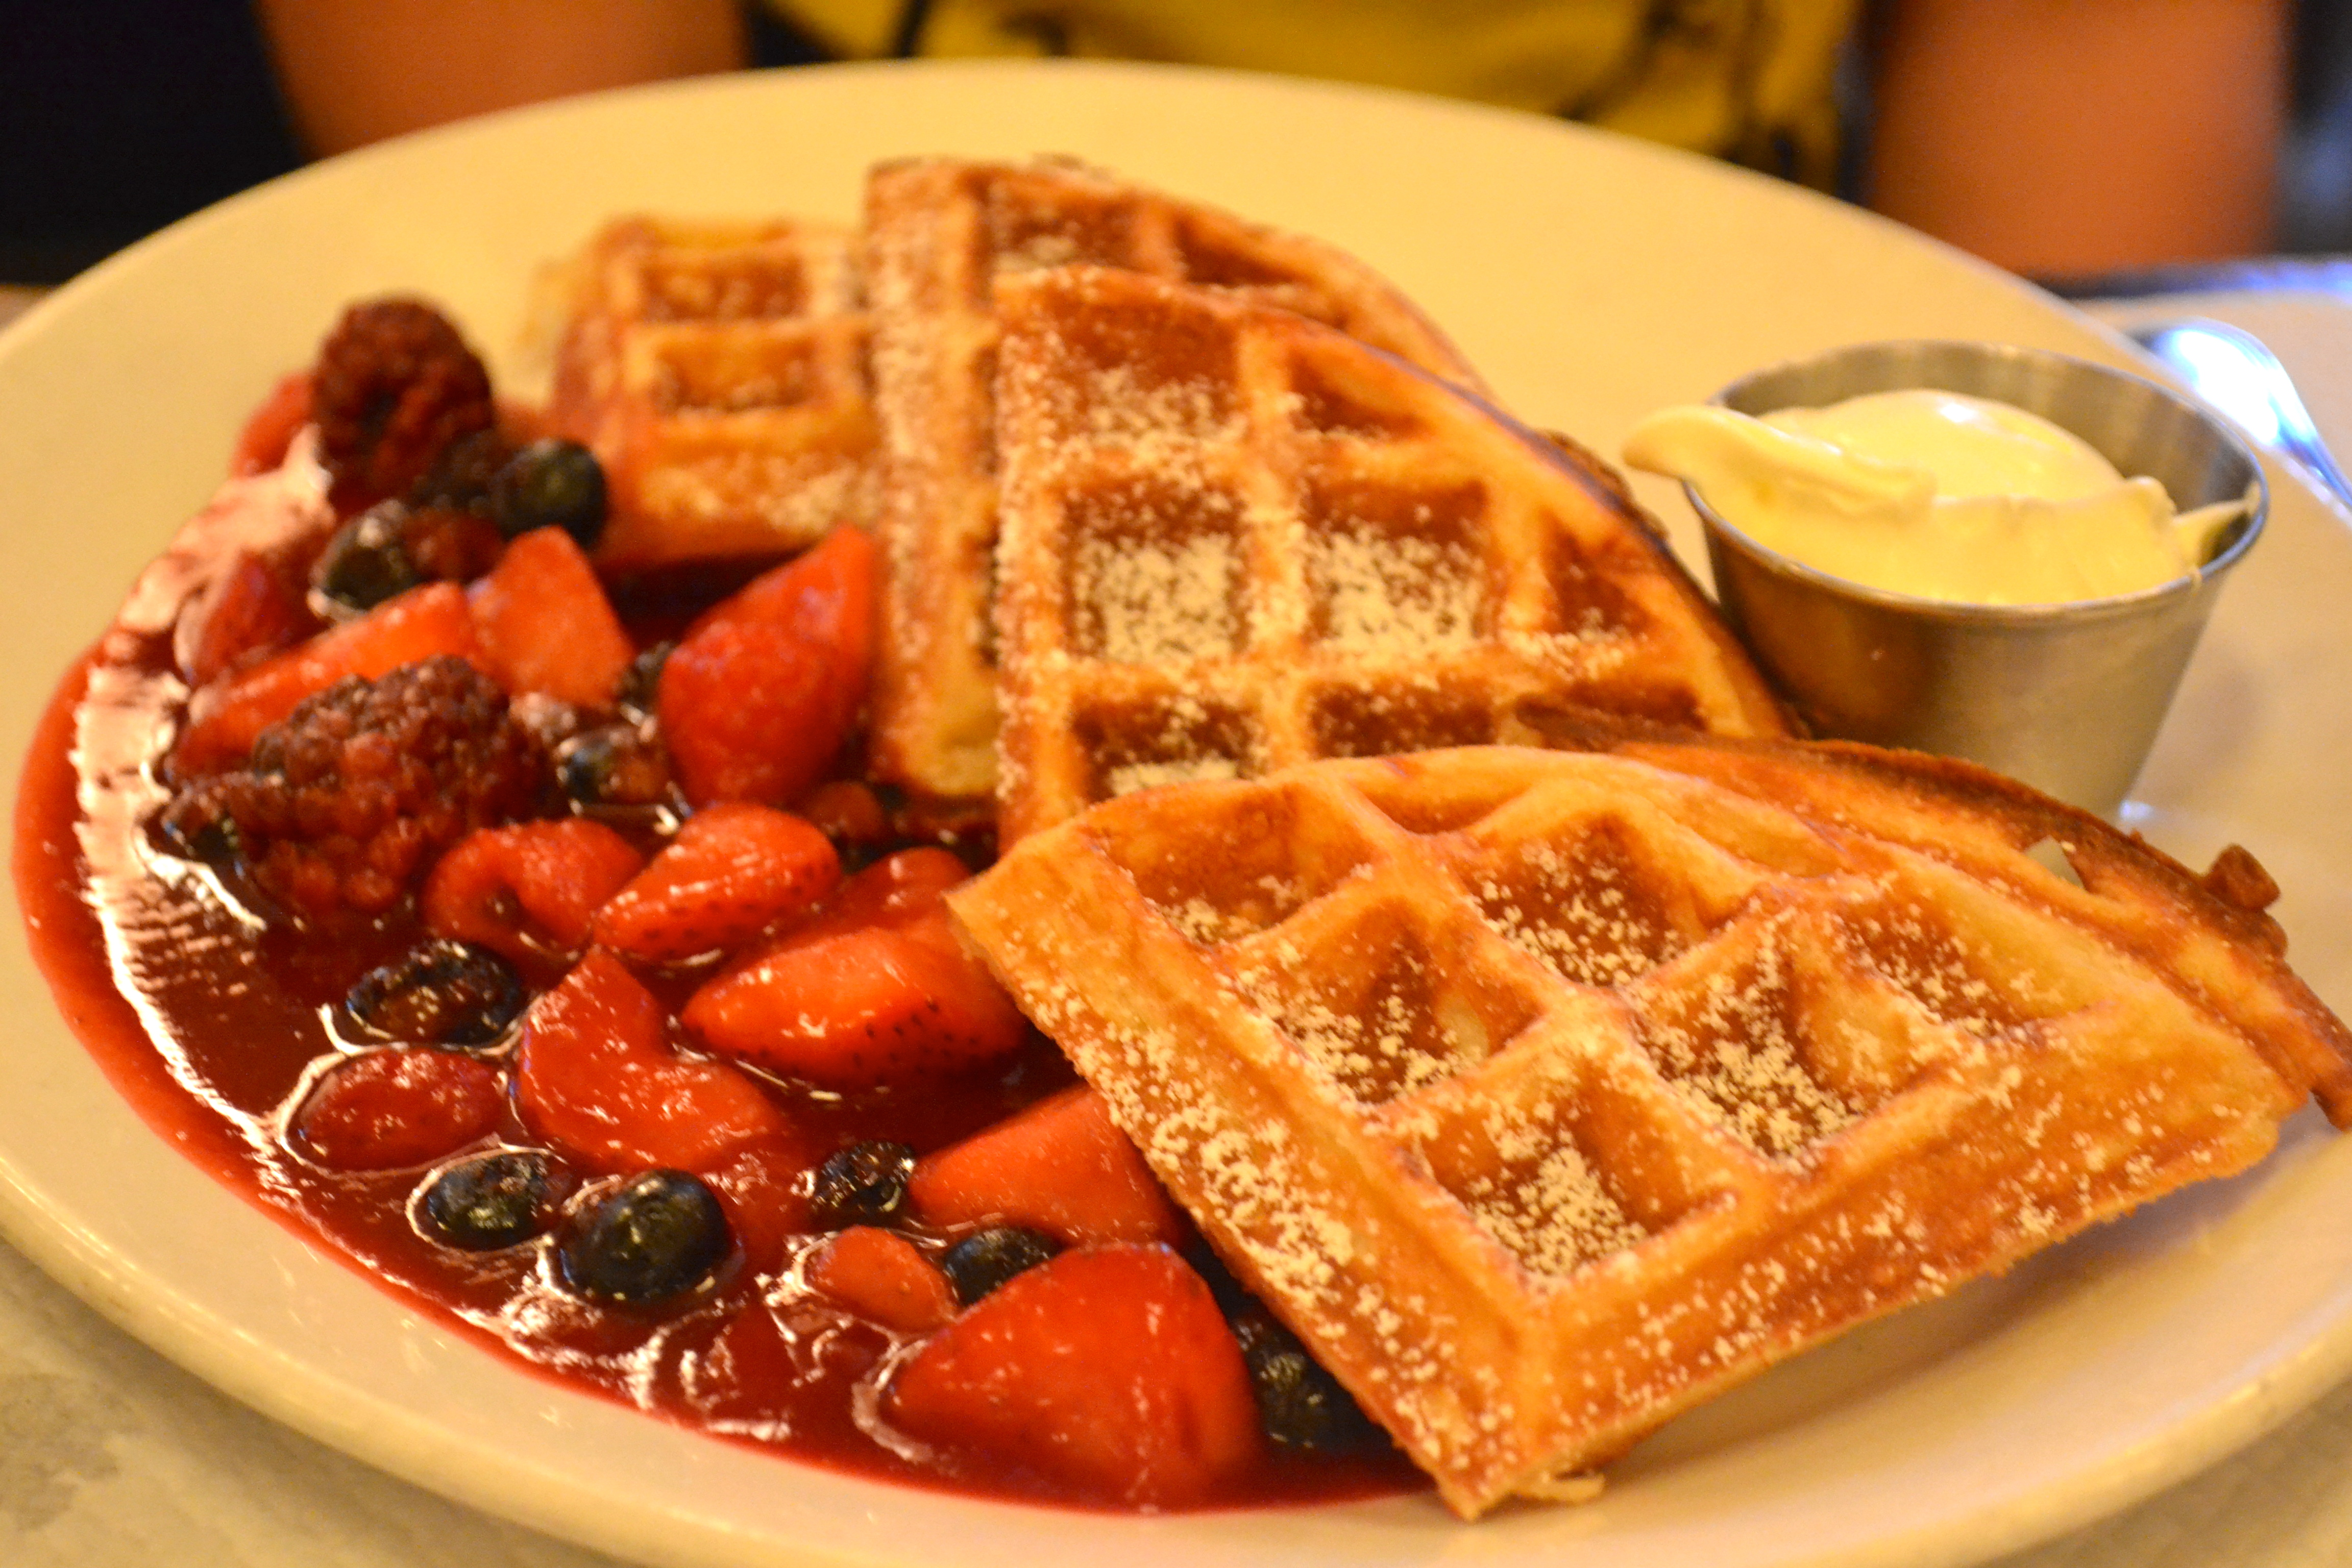 We also shared the sour cream hazelnut waffles with warm berries, also ...